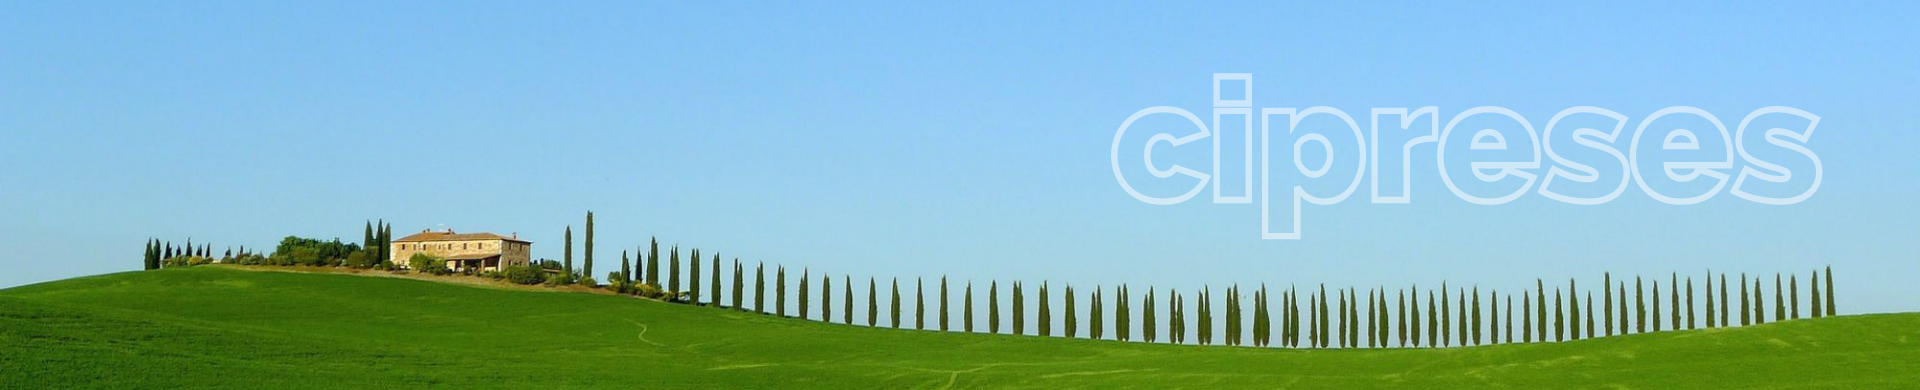 Buy cypresses - Cypress price - Cheap cypresses